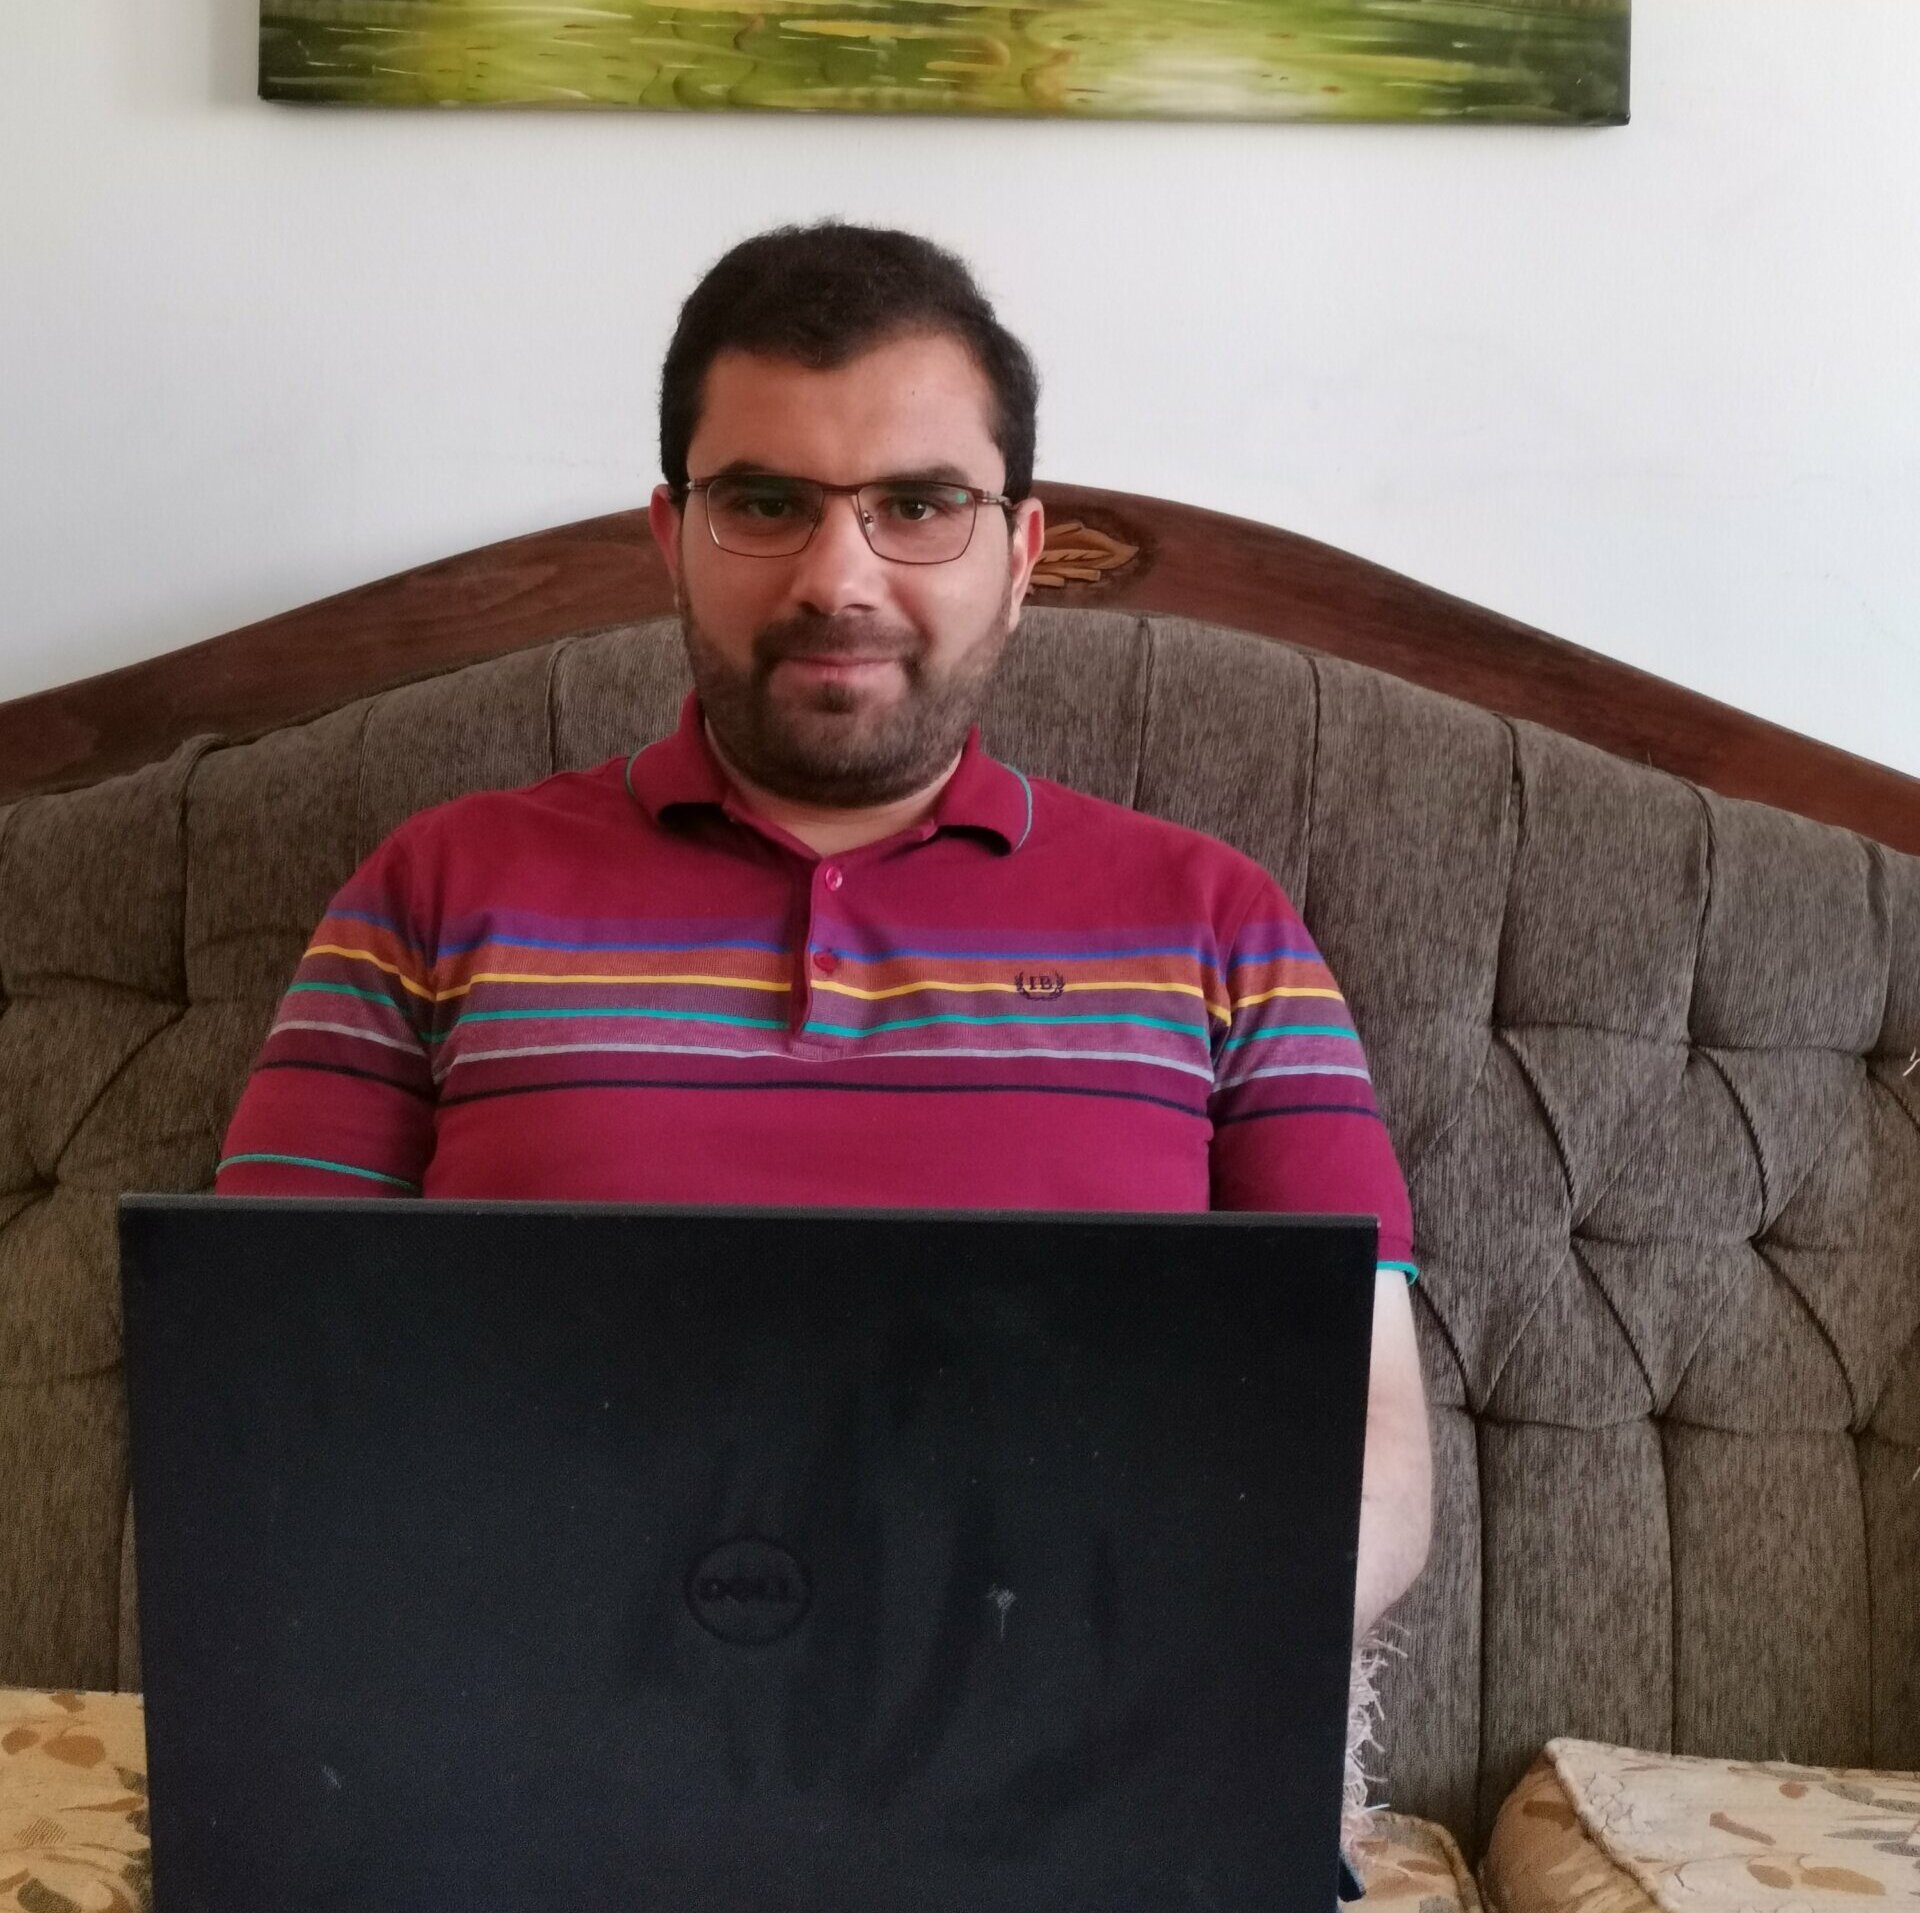 Kiron student Zaher continues skill building through online learning